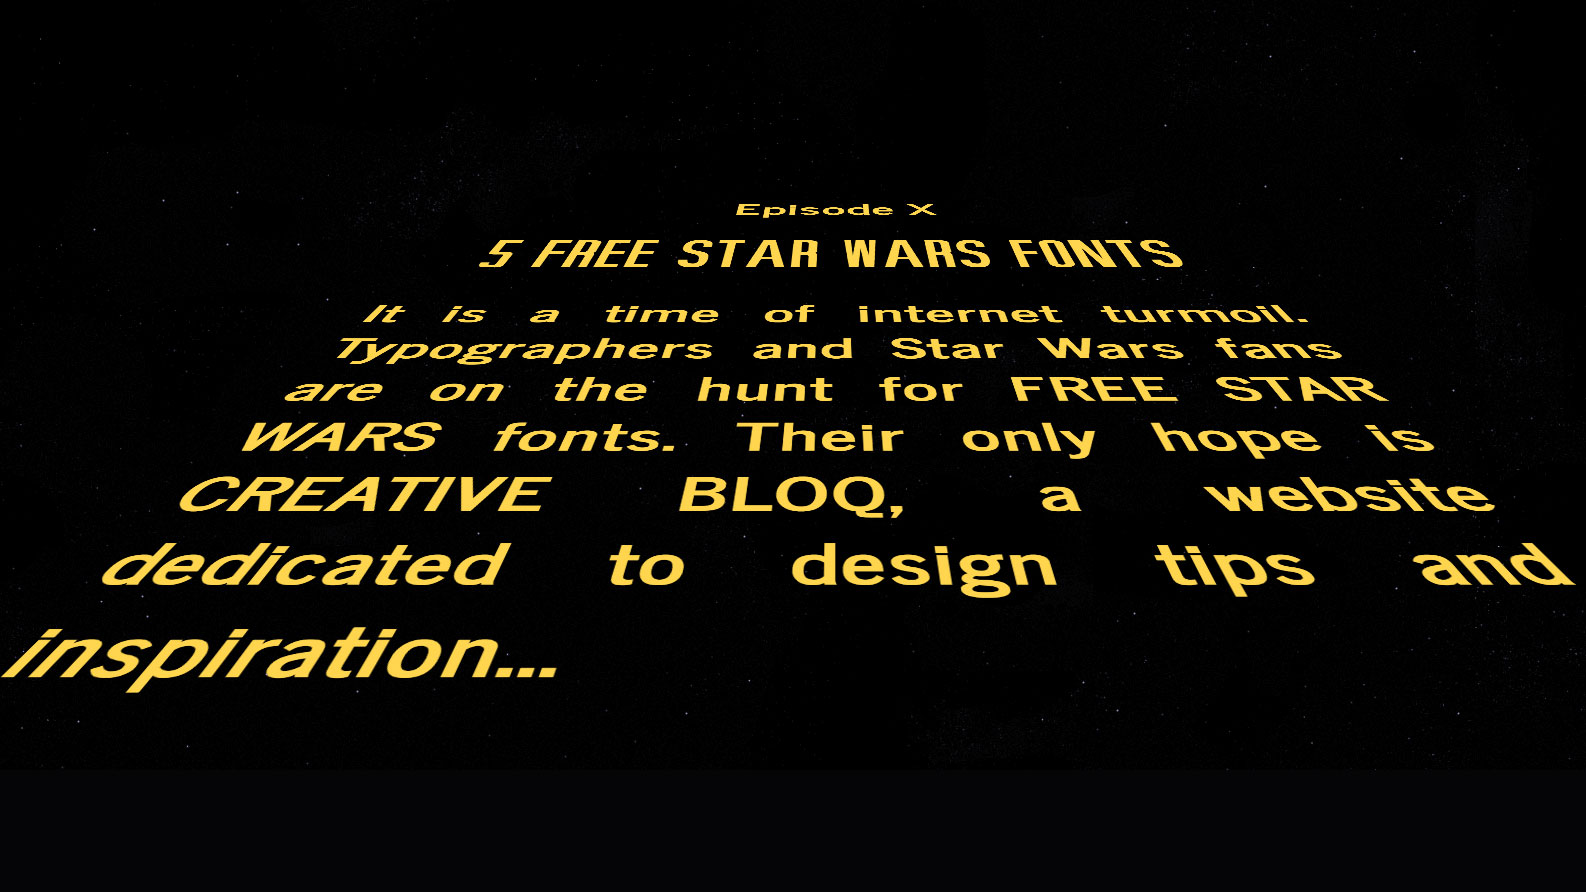 6 free Star Wars fonts | Creative Bloq